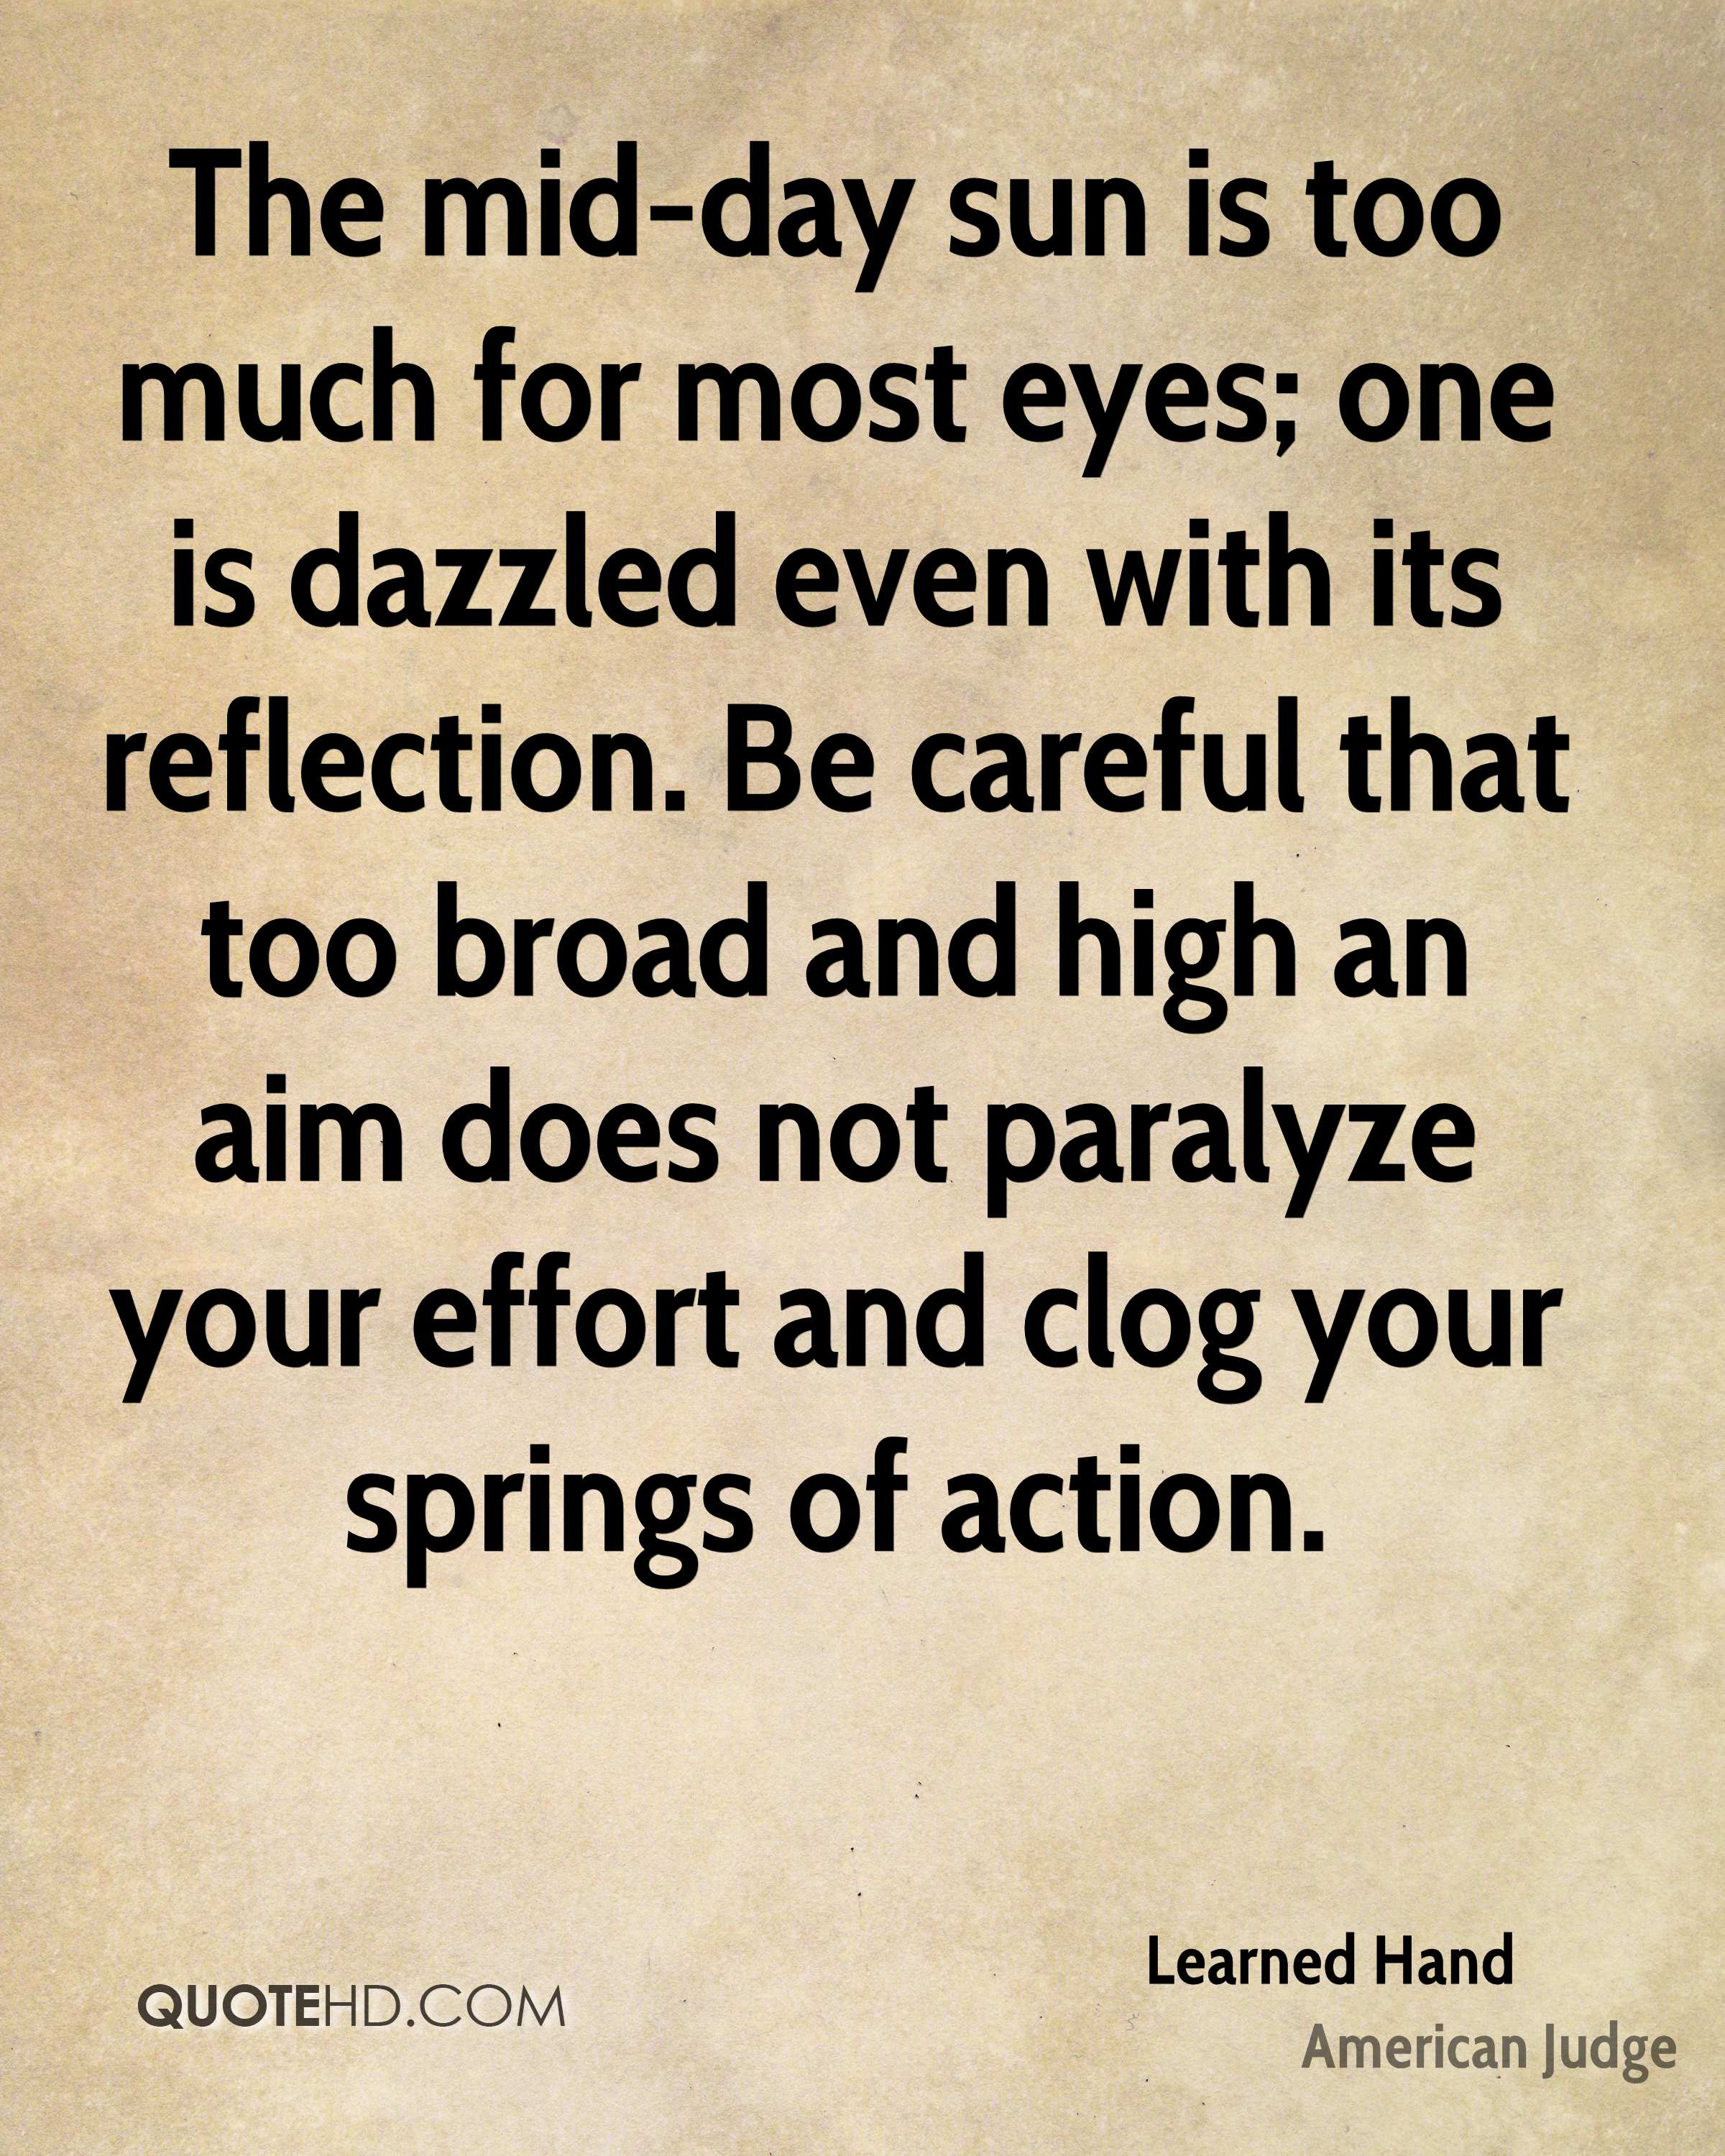 The mid-day sun is too much for most eyes; one is dazzled even with its reflection. Be careful that too broad and high an aim does not paralyze your effort and clog your springs of action.